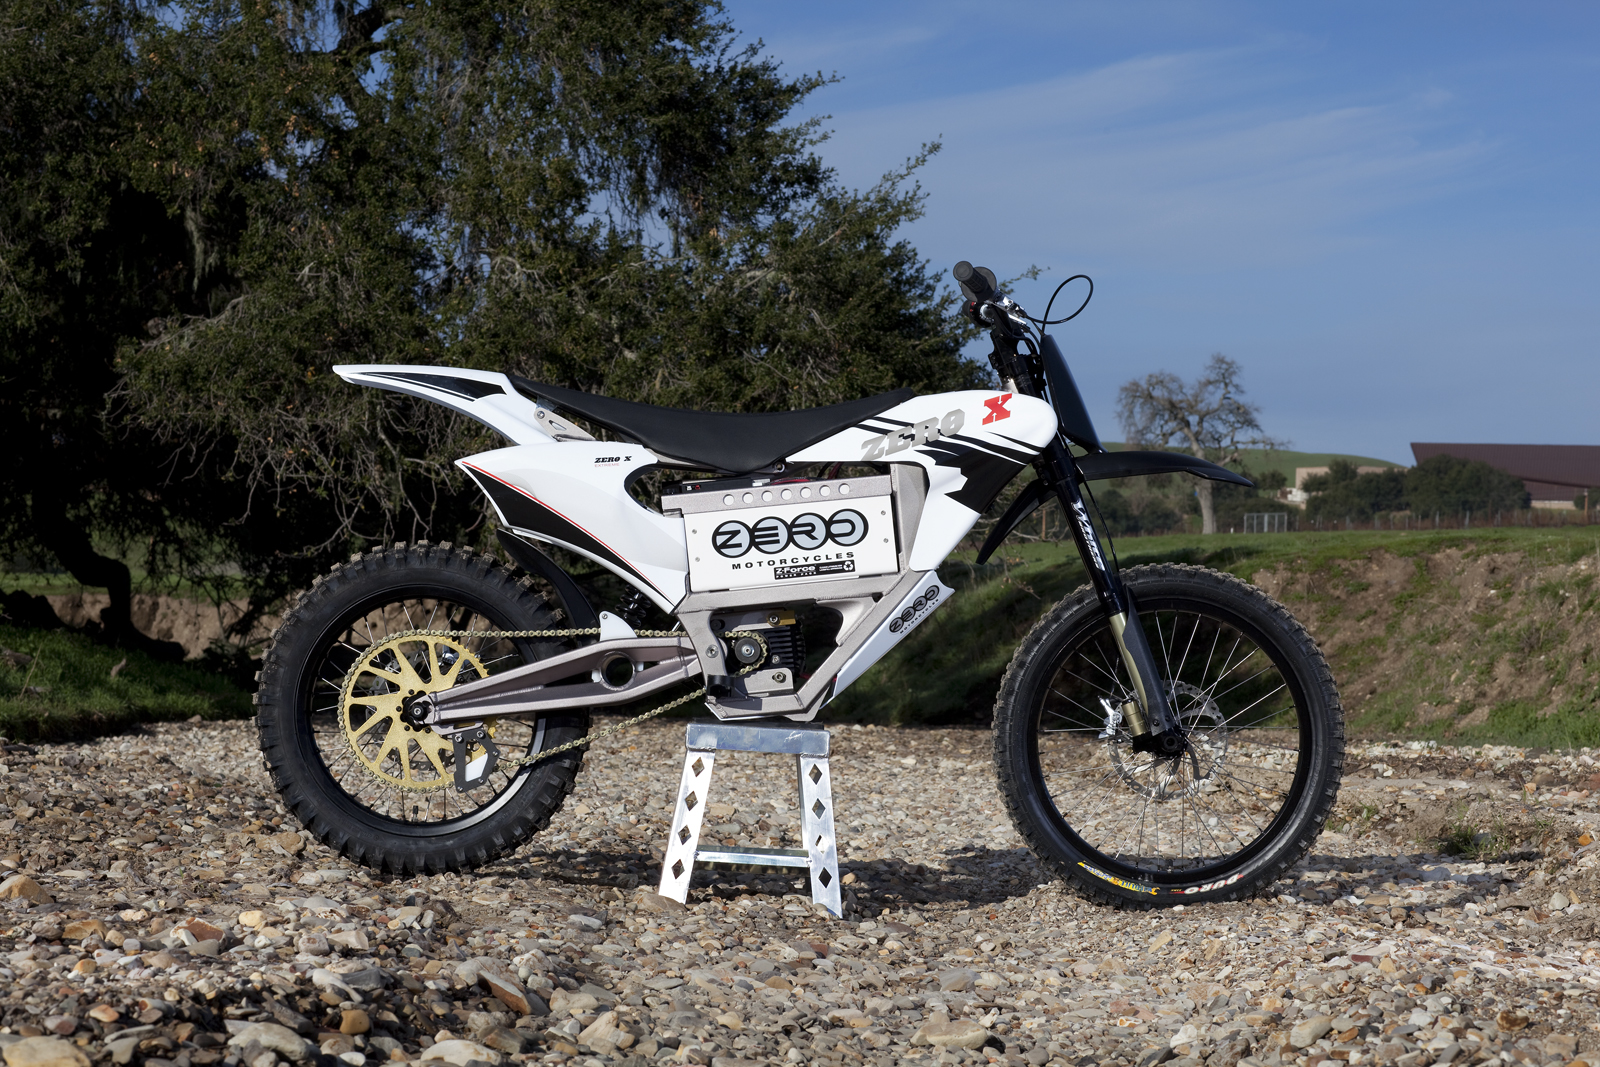 '.2010 Zero X Electric Motorcycle: Zaca Station - Creek.'